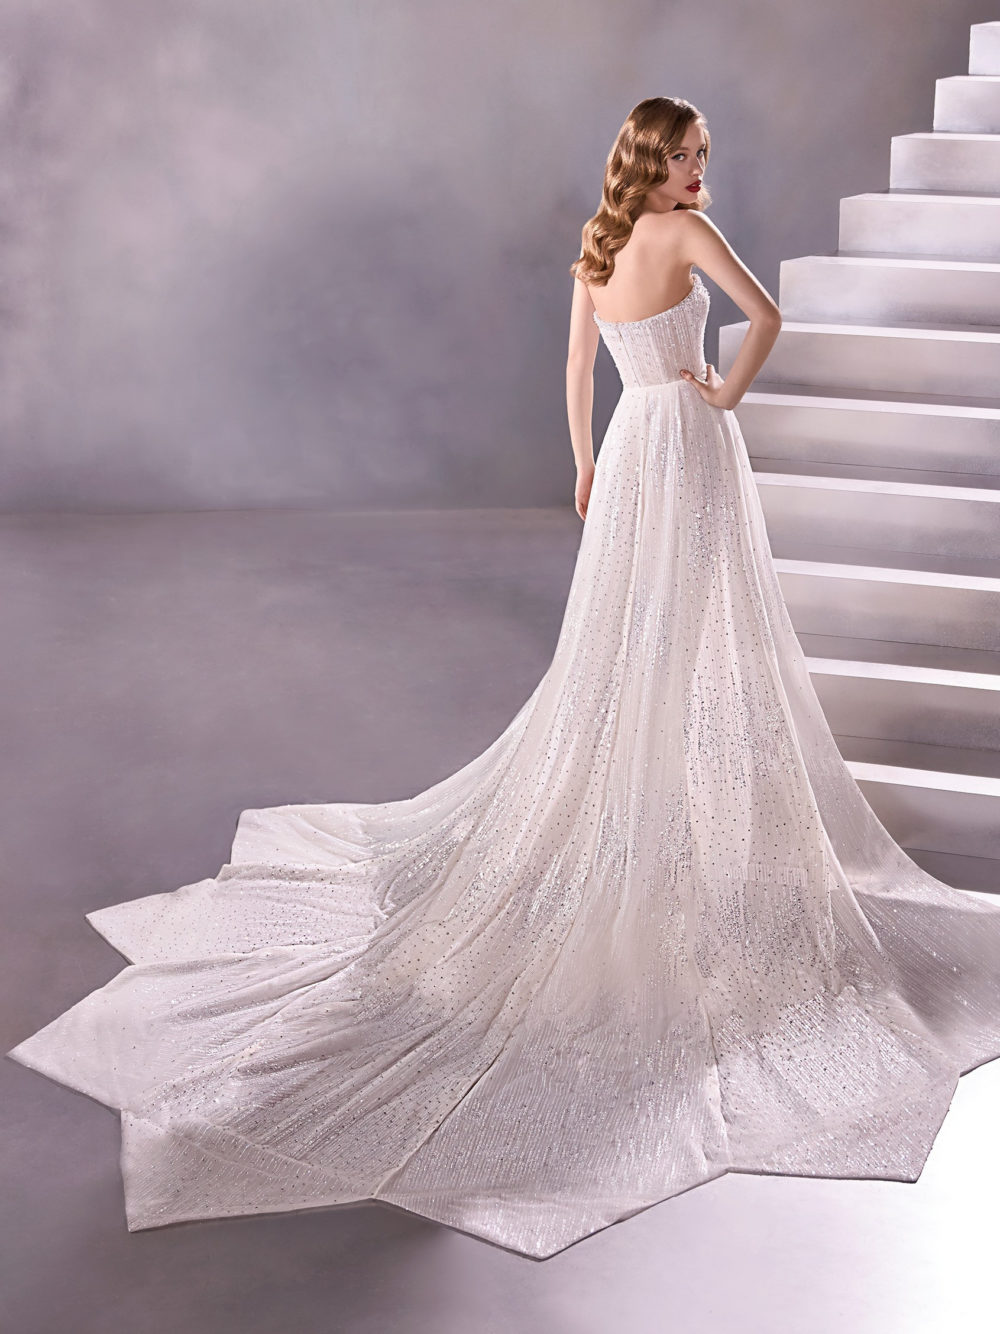 Pronovias Milkyway Wedding Gown Dress 2020 Atelier Collection back